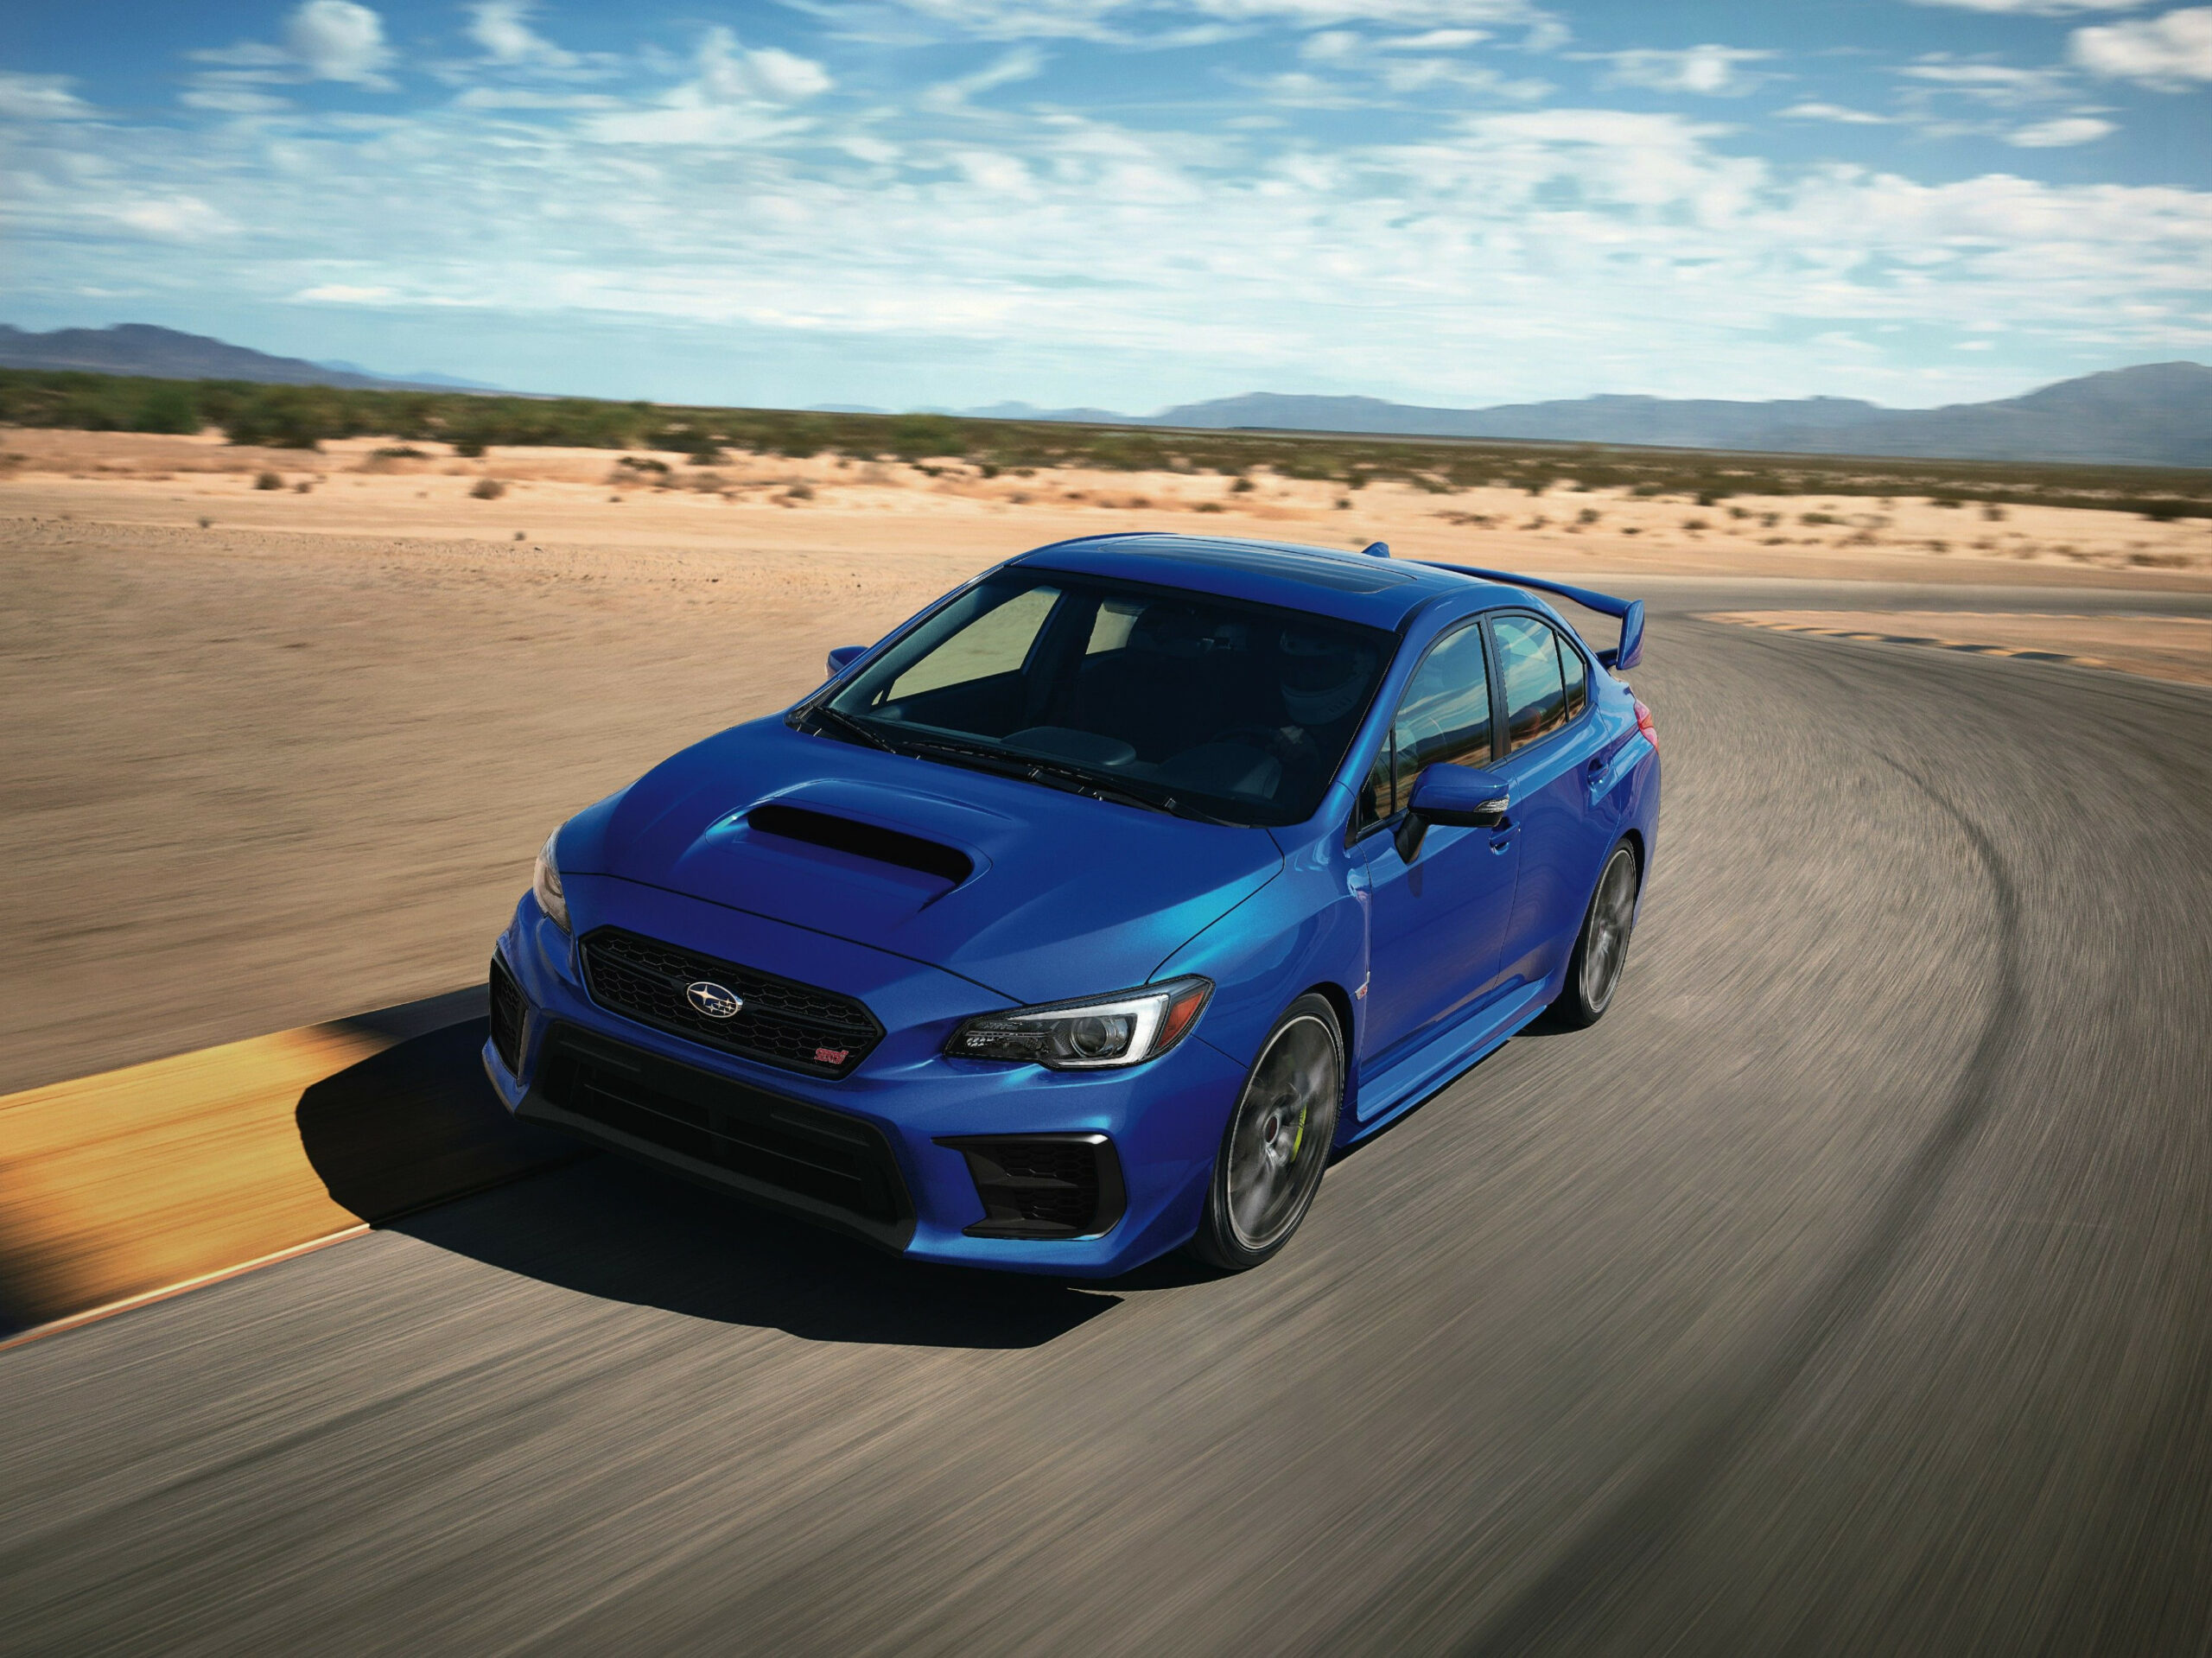 8 Subaru WRX STI Review, Pricing, and Specs - 2020 subaru impreza specs